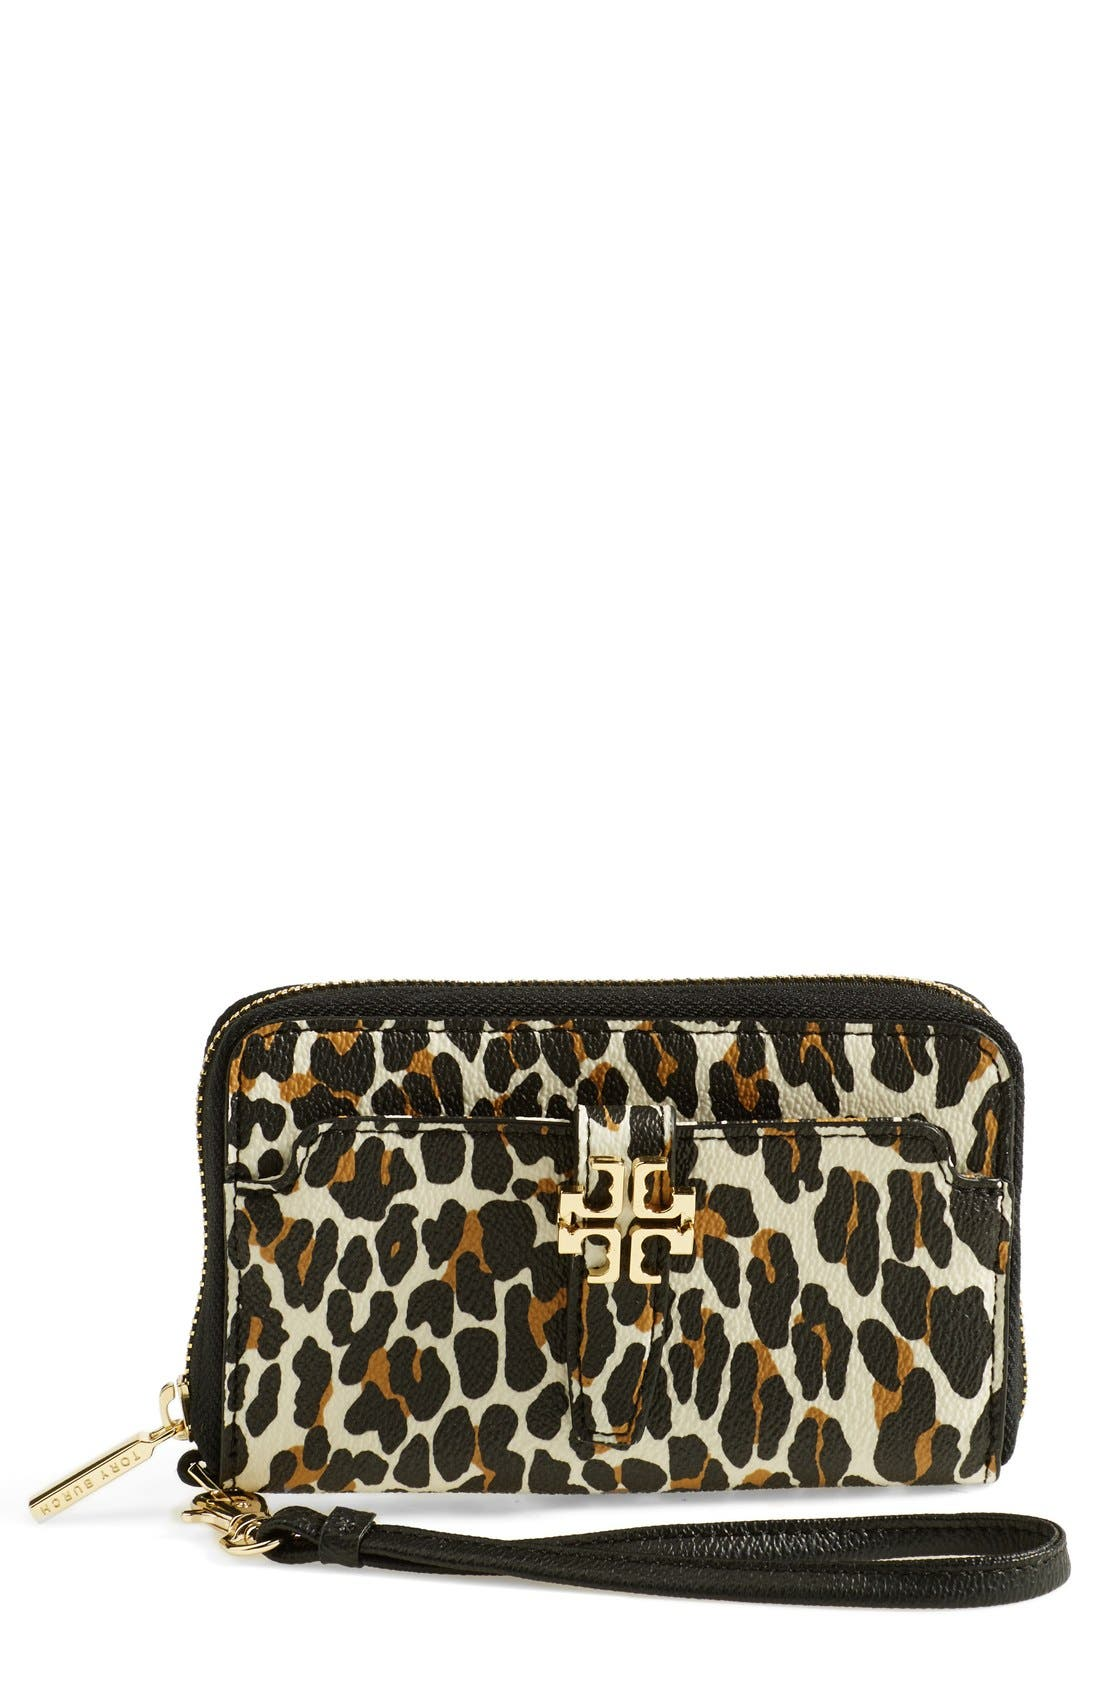 Alternate Image 1 Selected - Tory Burch 'Plaque' Leopard Print Smartphone Wristlet